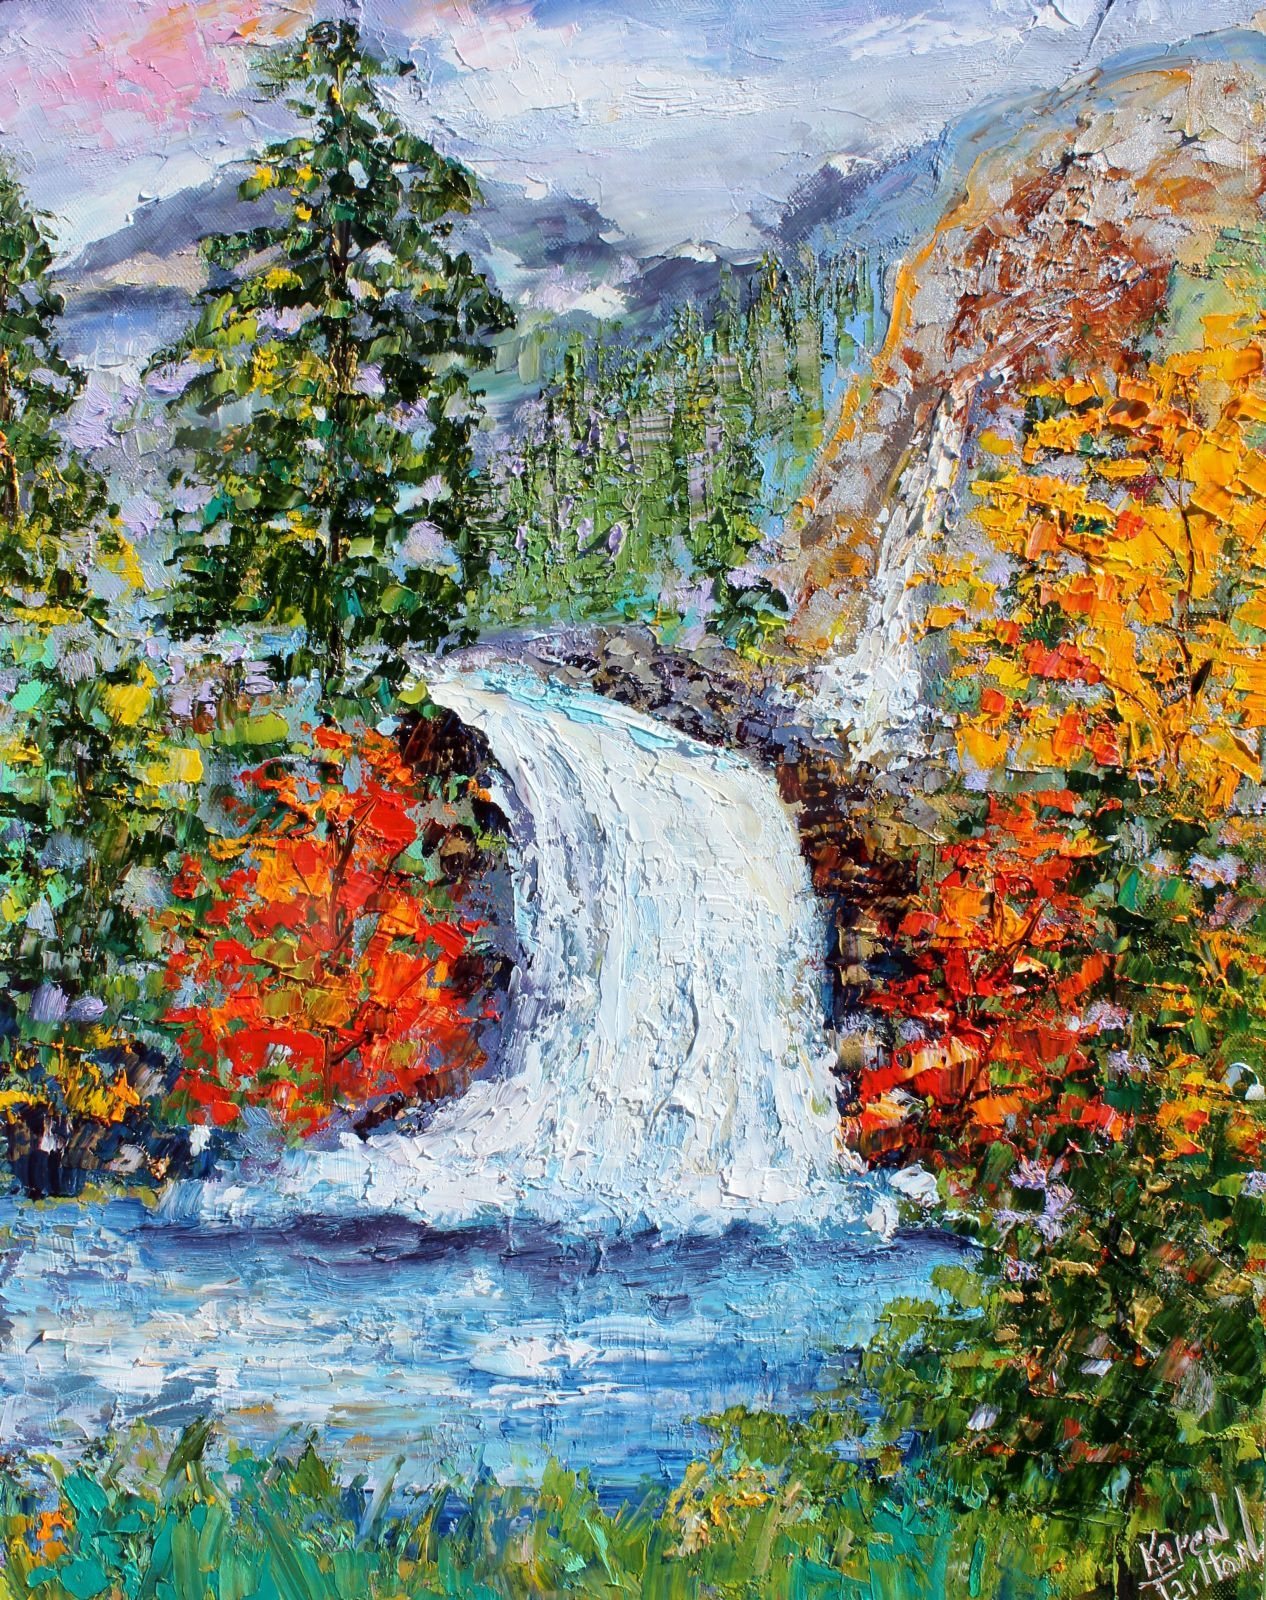 Waterfall Painting On Canvas Lianne S Paintings Painting Waterfall Paintings Art Dubai Khalifa